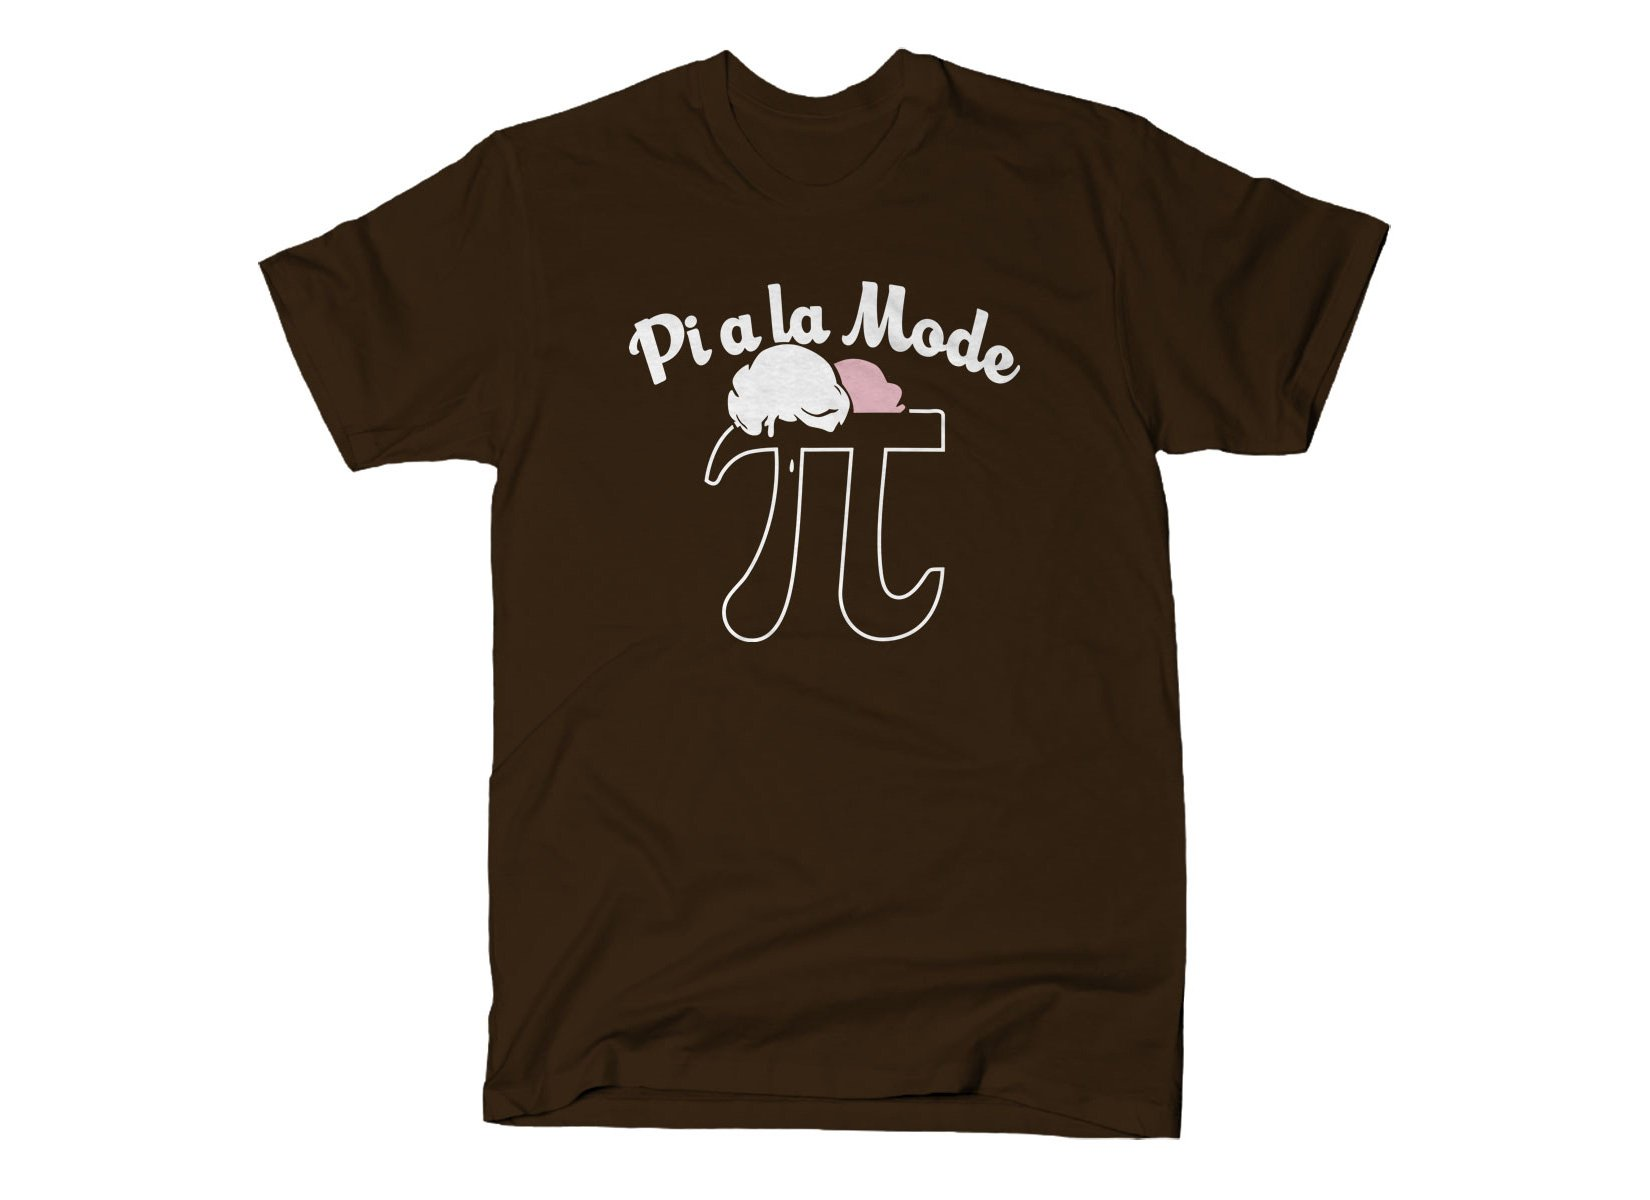 Pi a la Mode on Mens T-Shirt